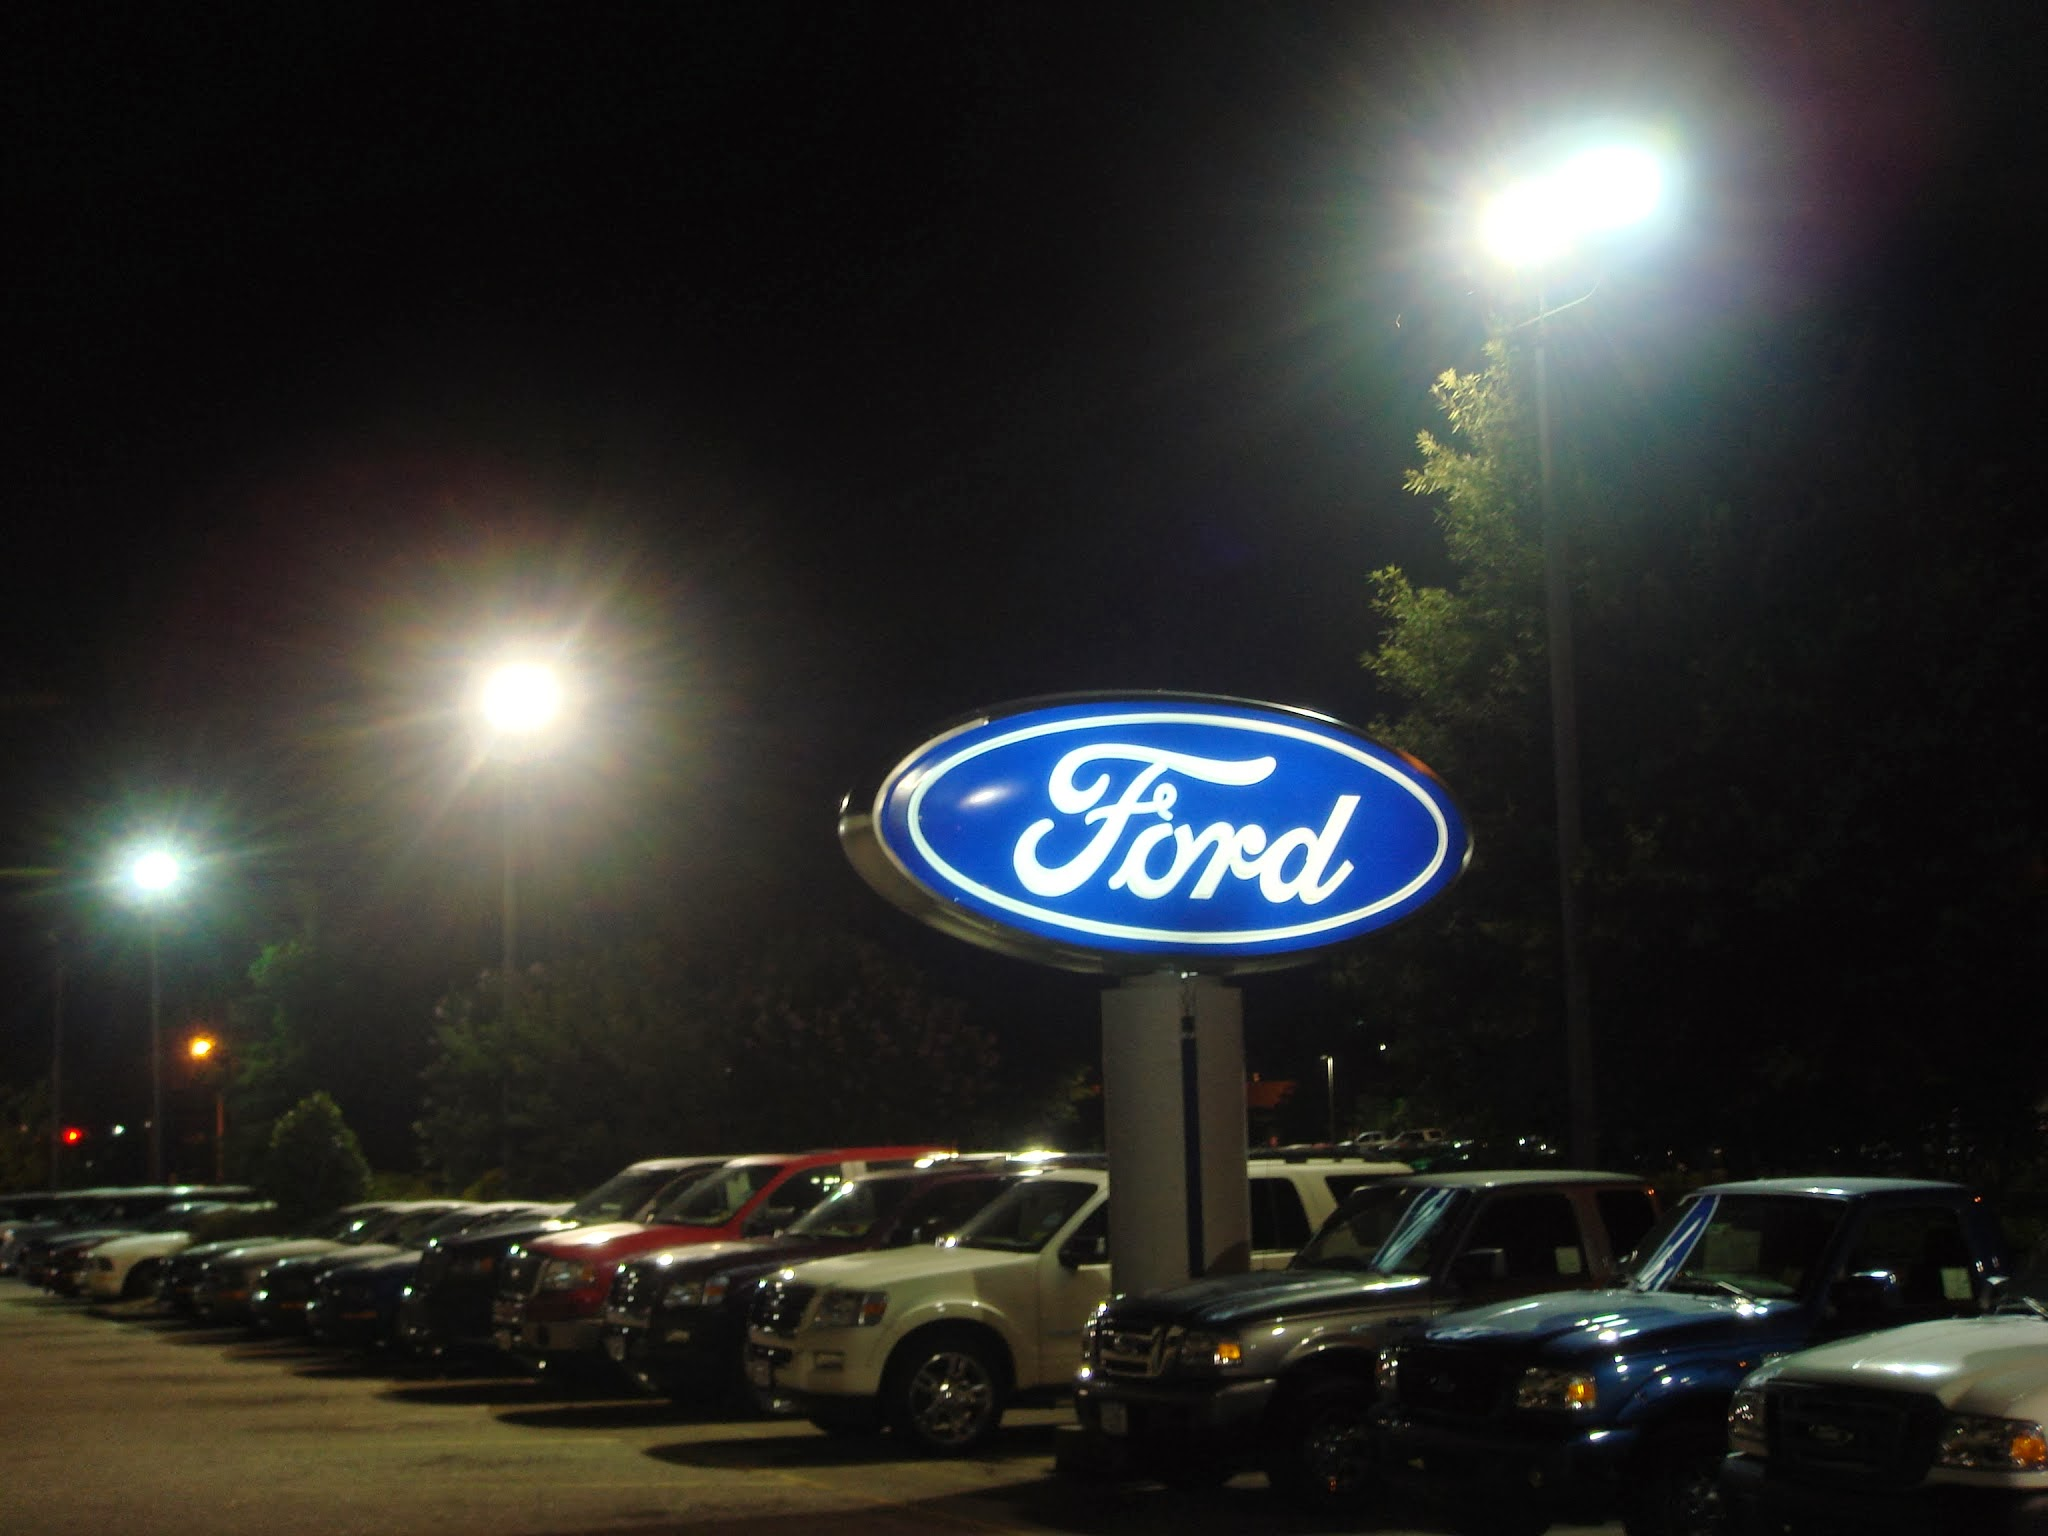 Capital Ford - Raleigh, NC